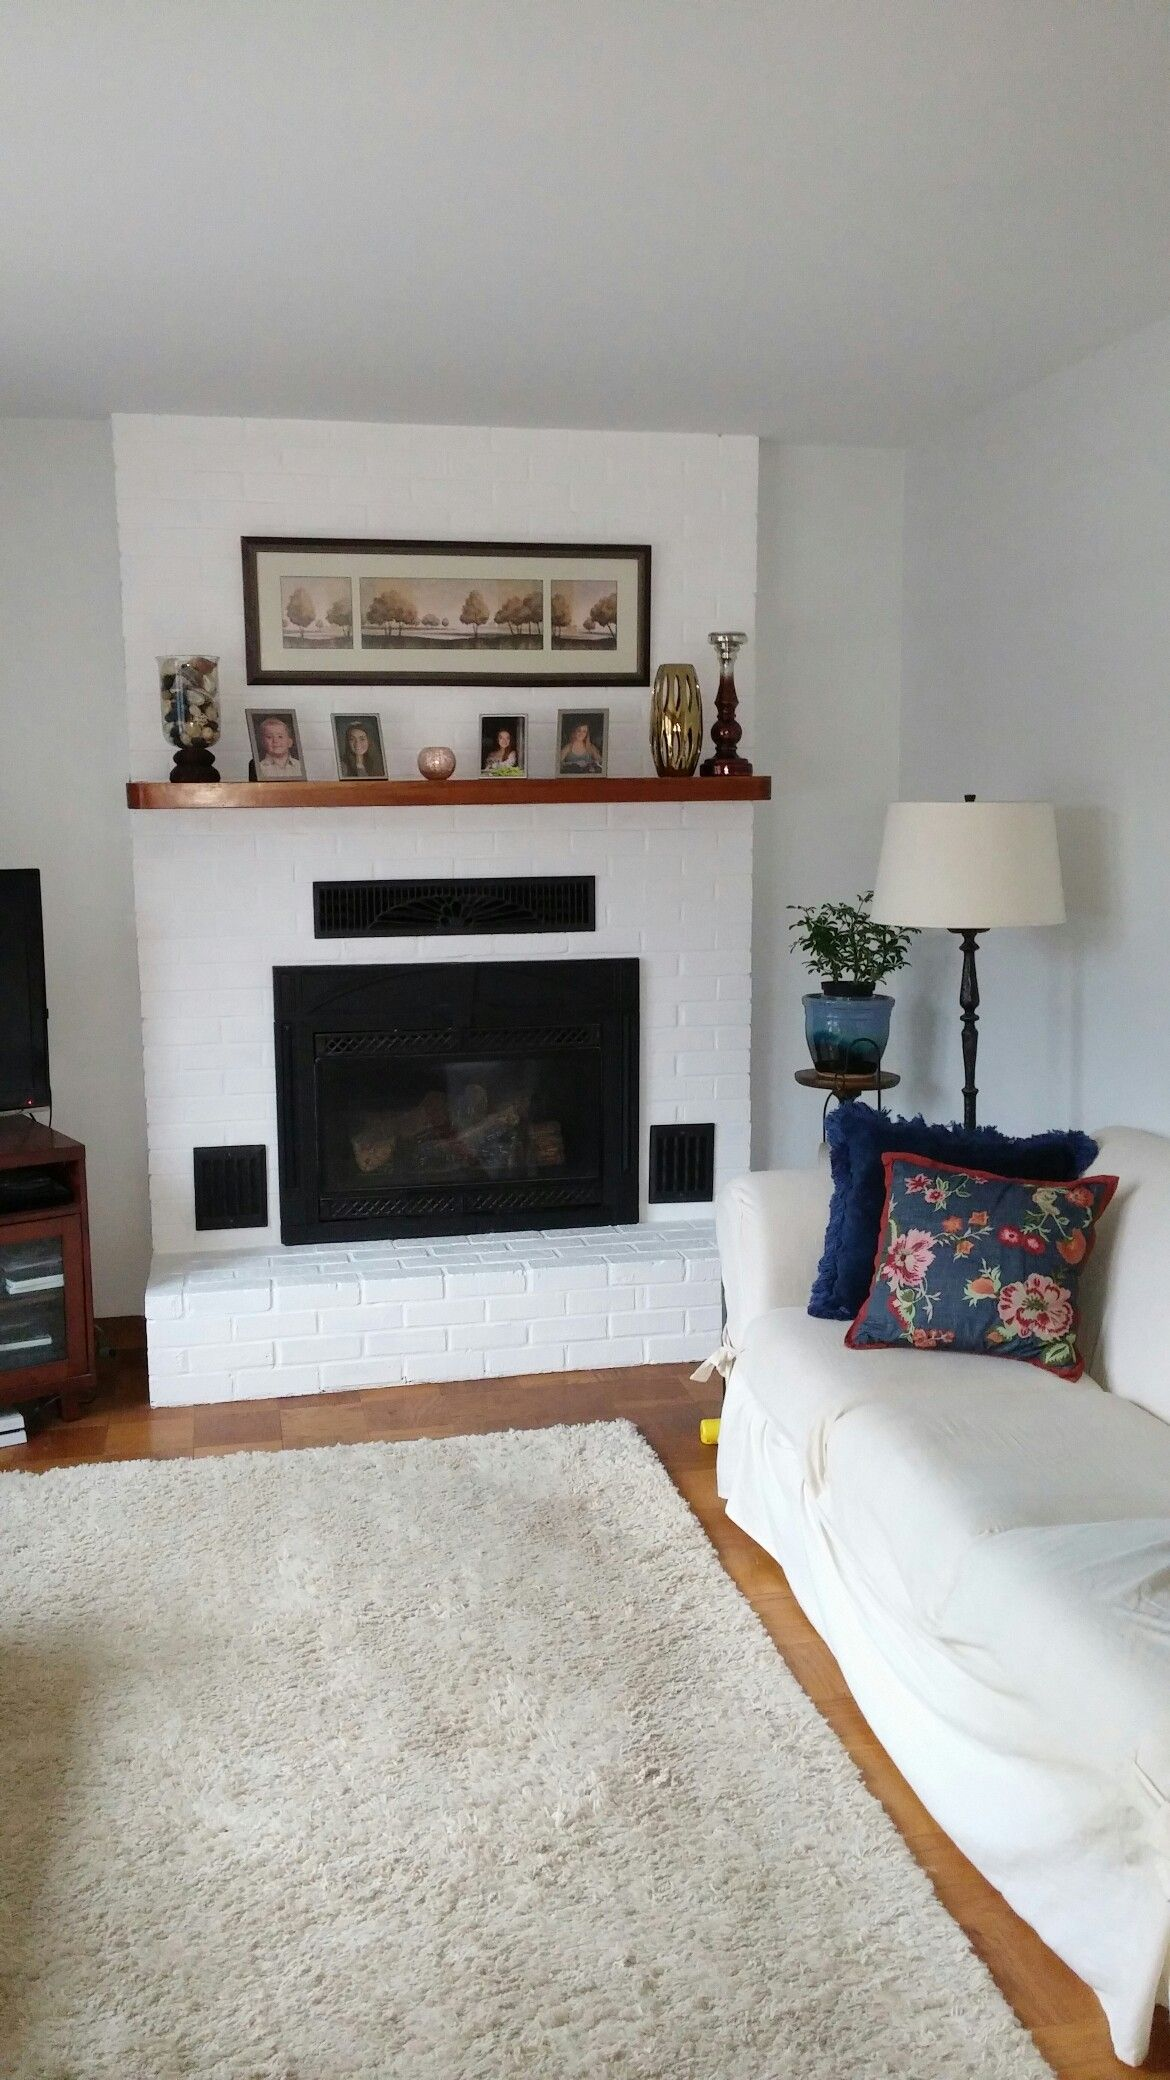 Painted brick fireplace to brighten a room brighten up your room